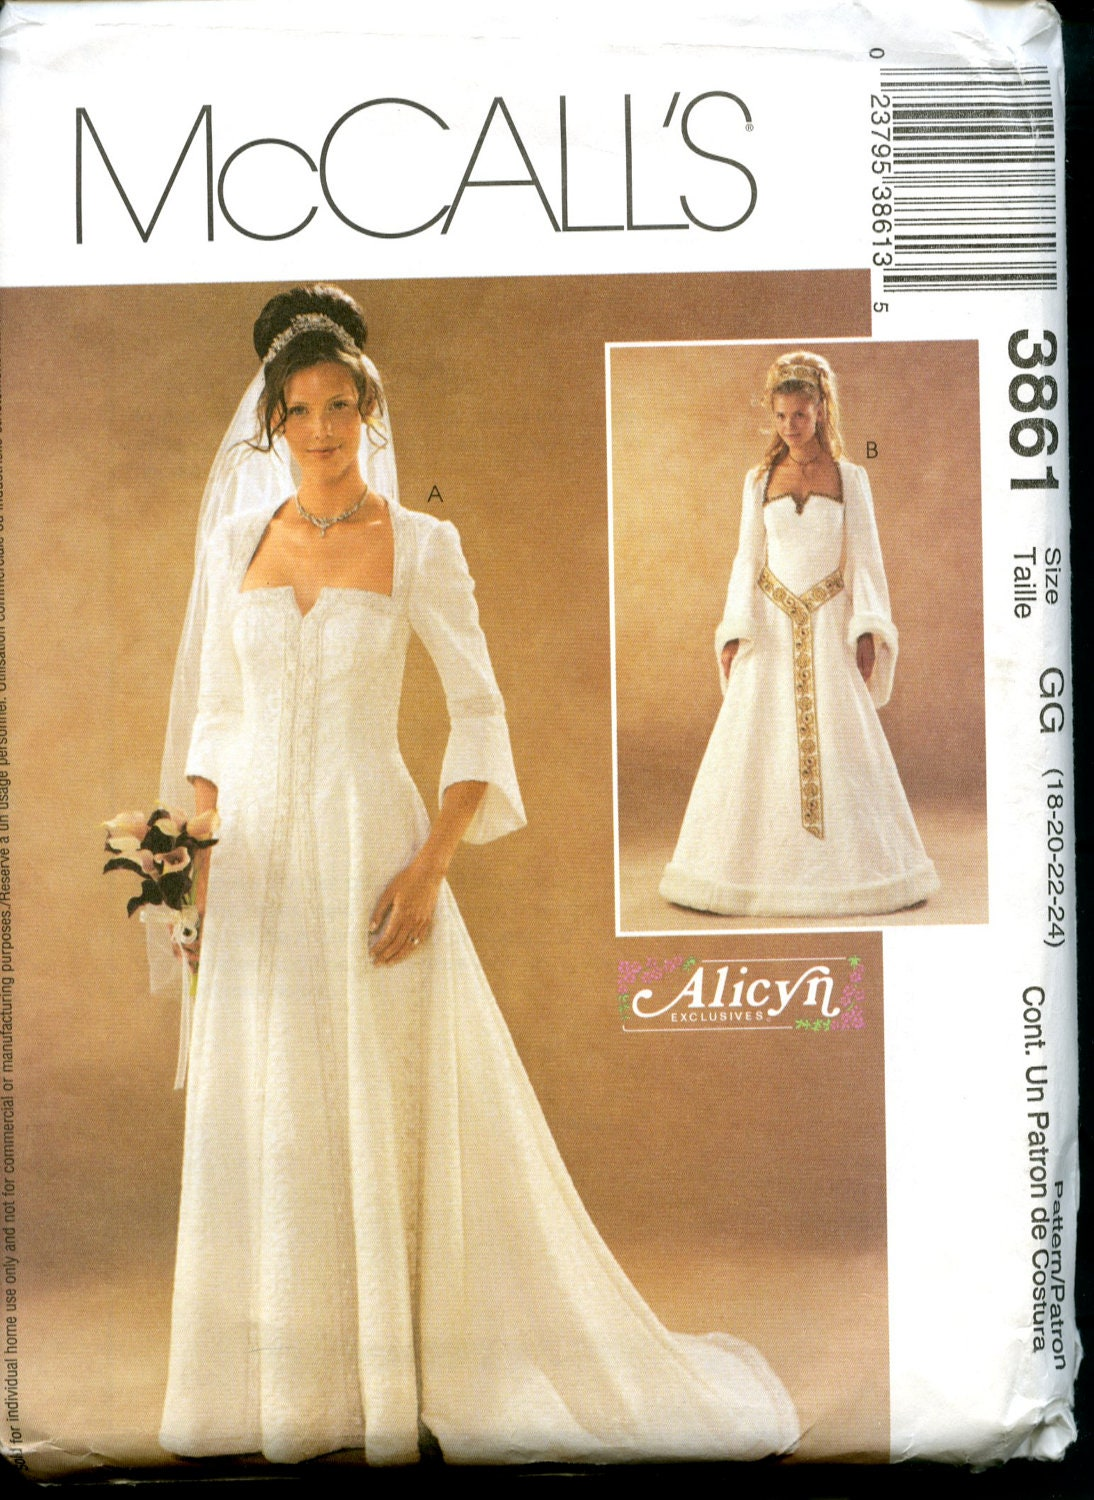 McCalls 3861 Fantasy Bridal Gown Pattern By GracinePatterns